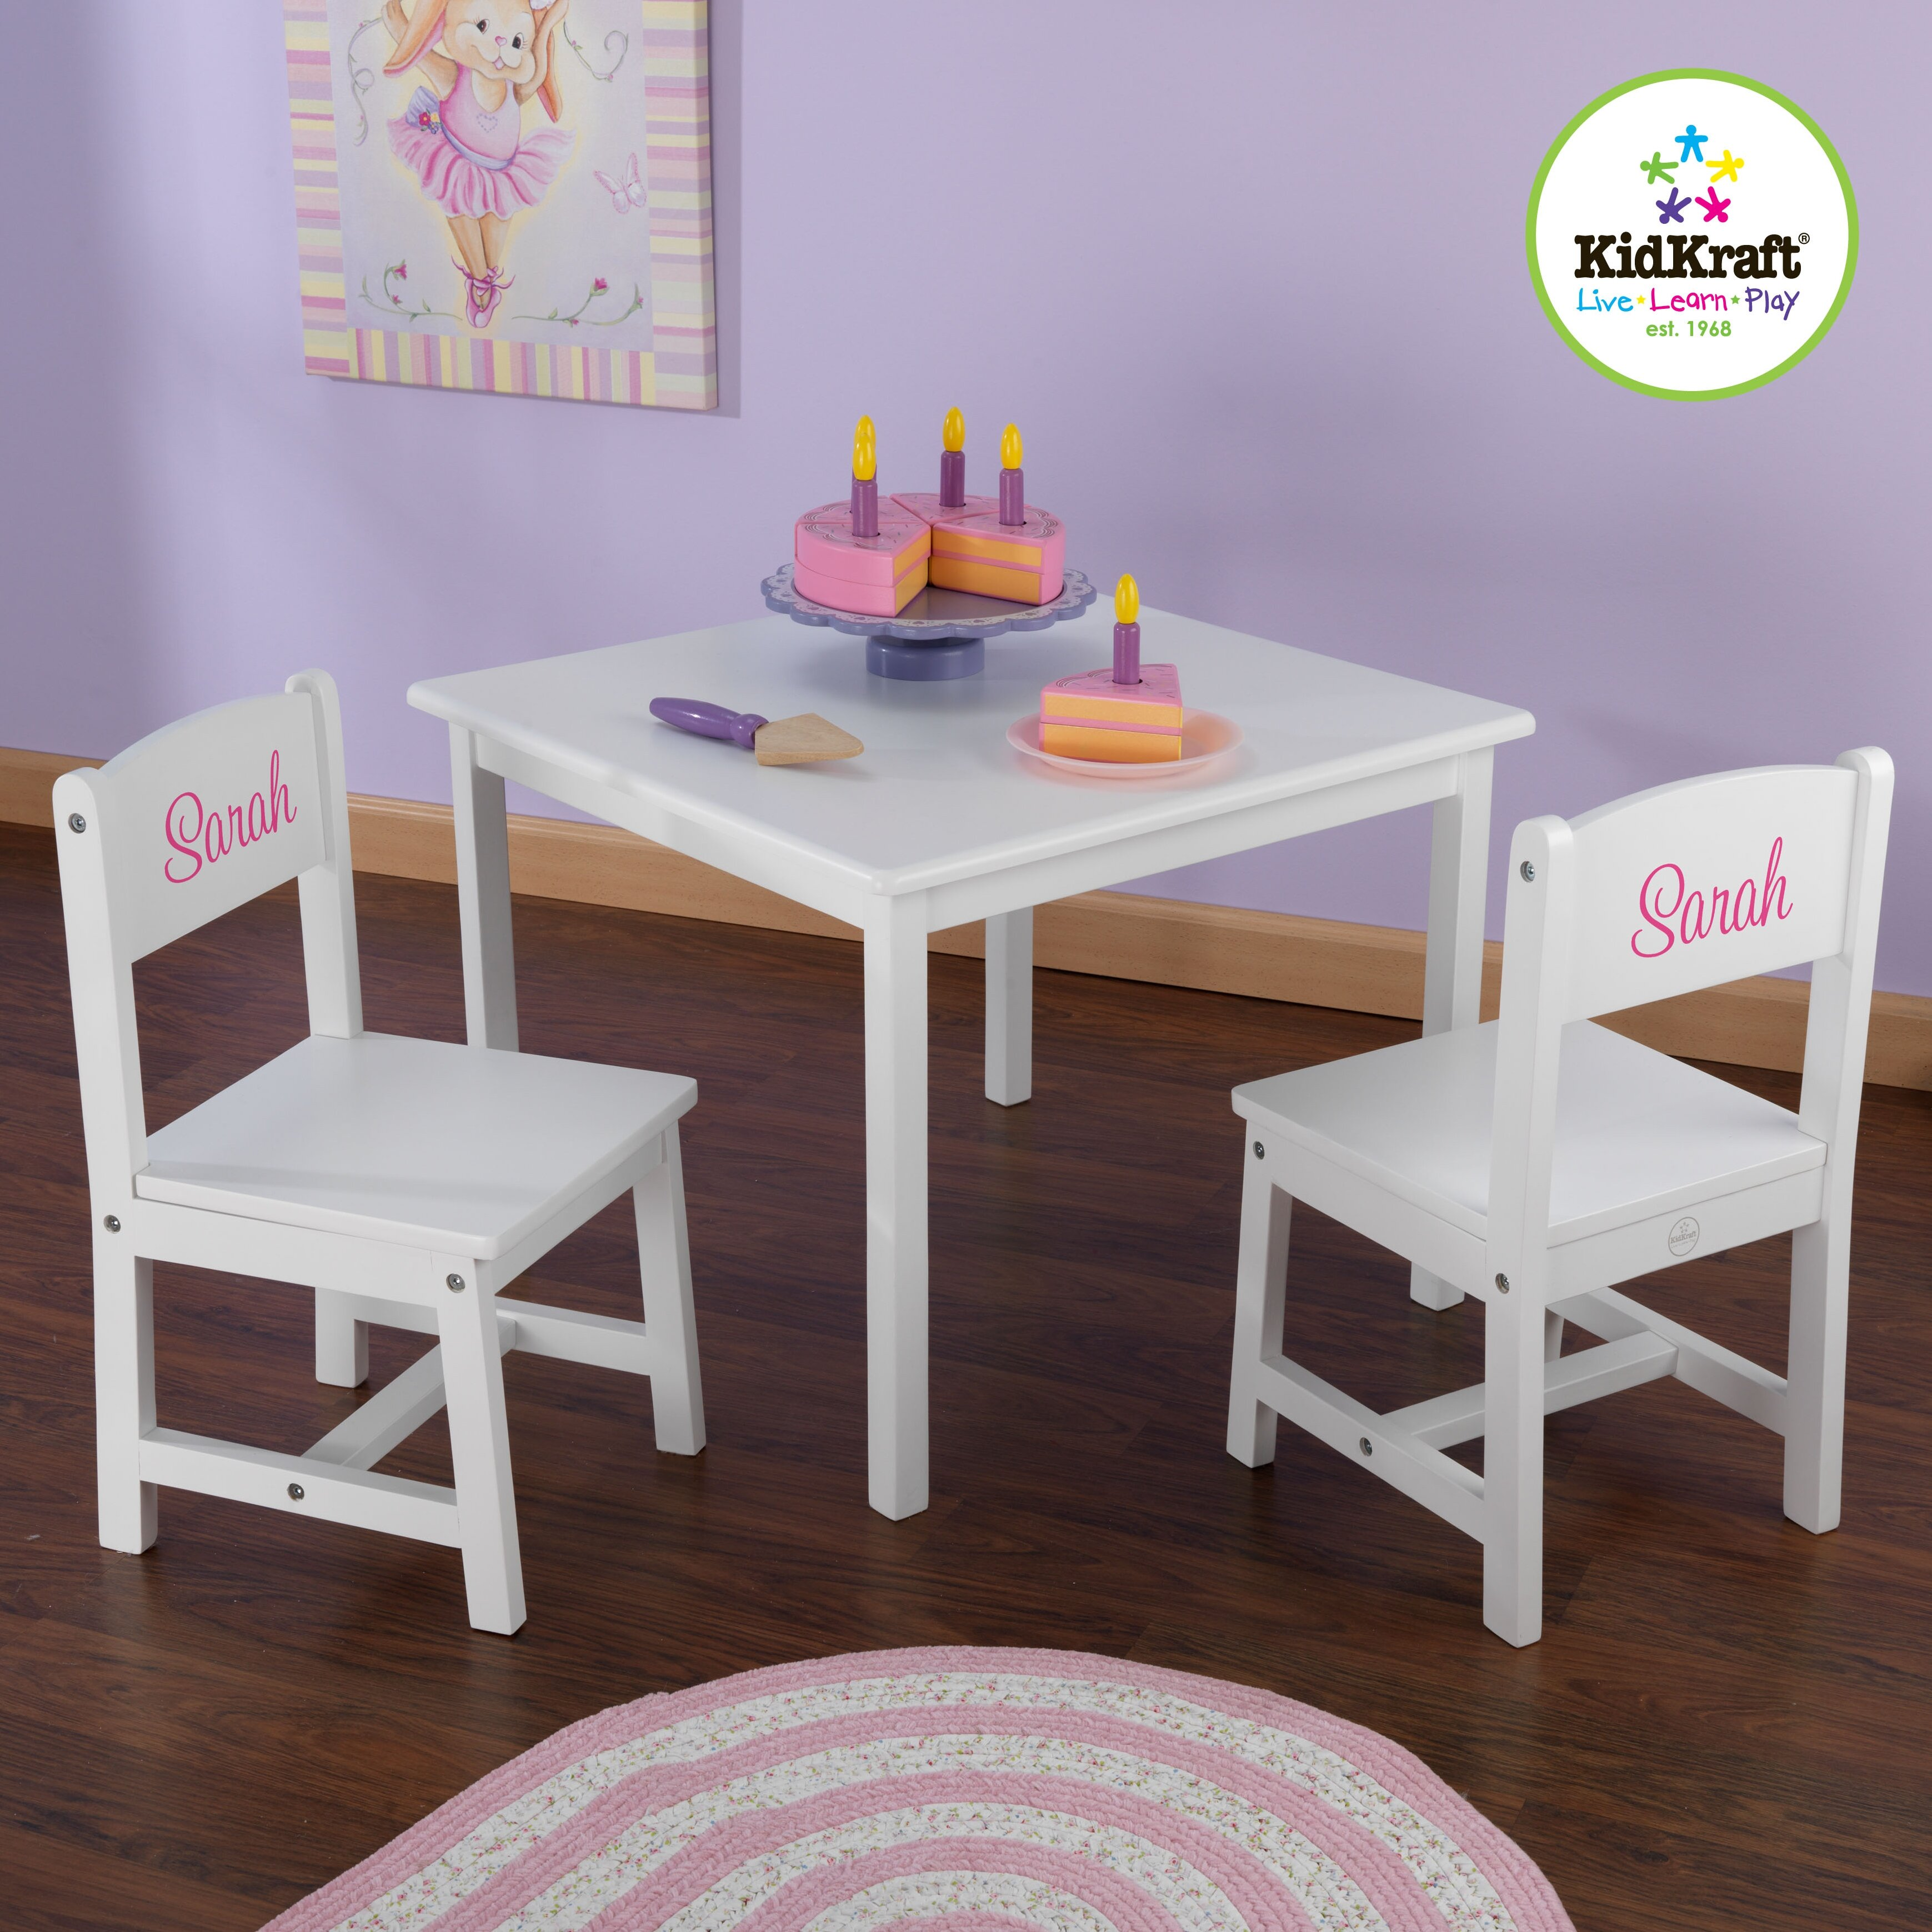 KidKraft Personalized Aspen Kids 3 Piece Table and Chair Set – Aspen Chair